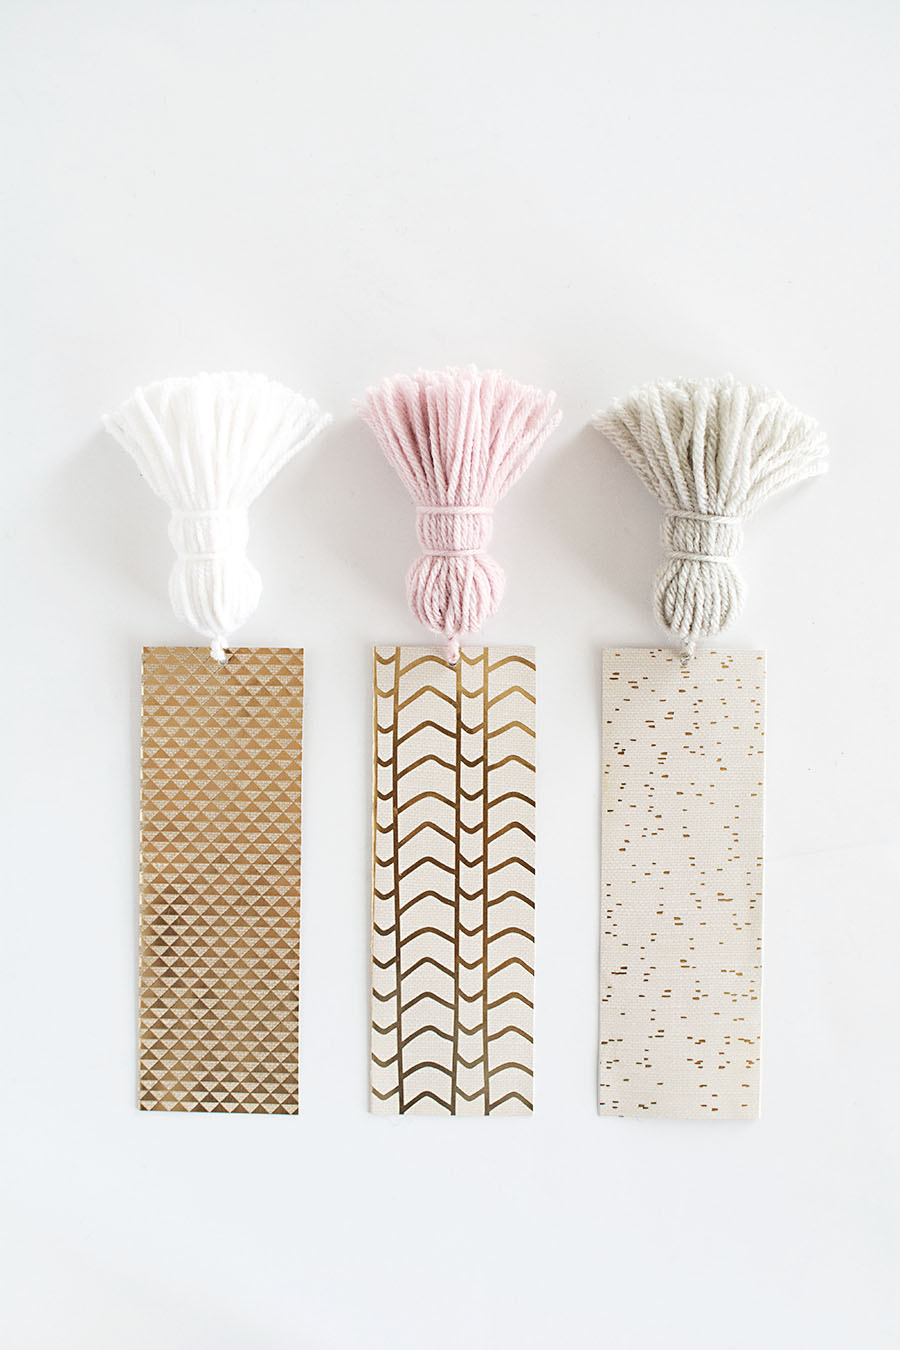 Tassel bookmarks made with decorative paper and yarn.